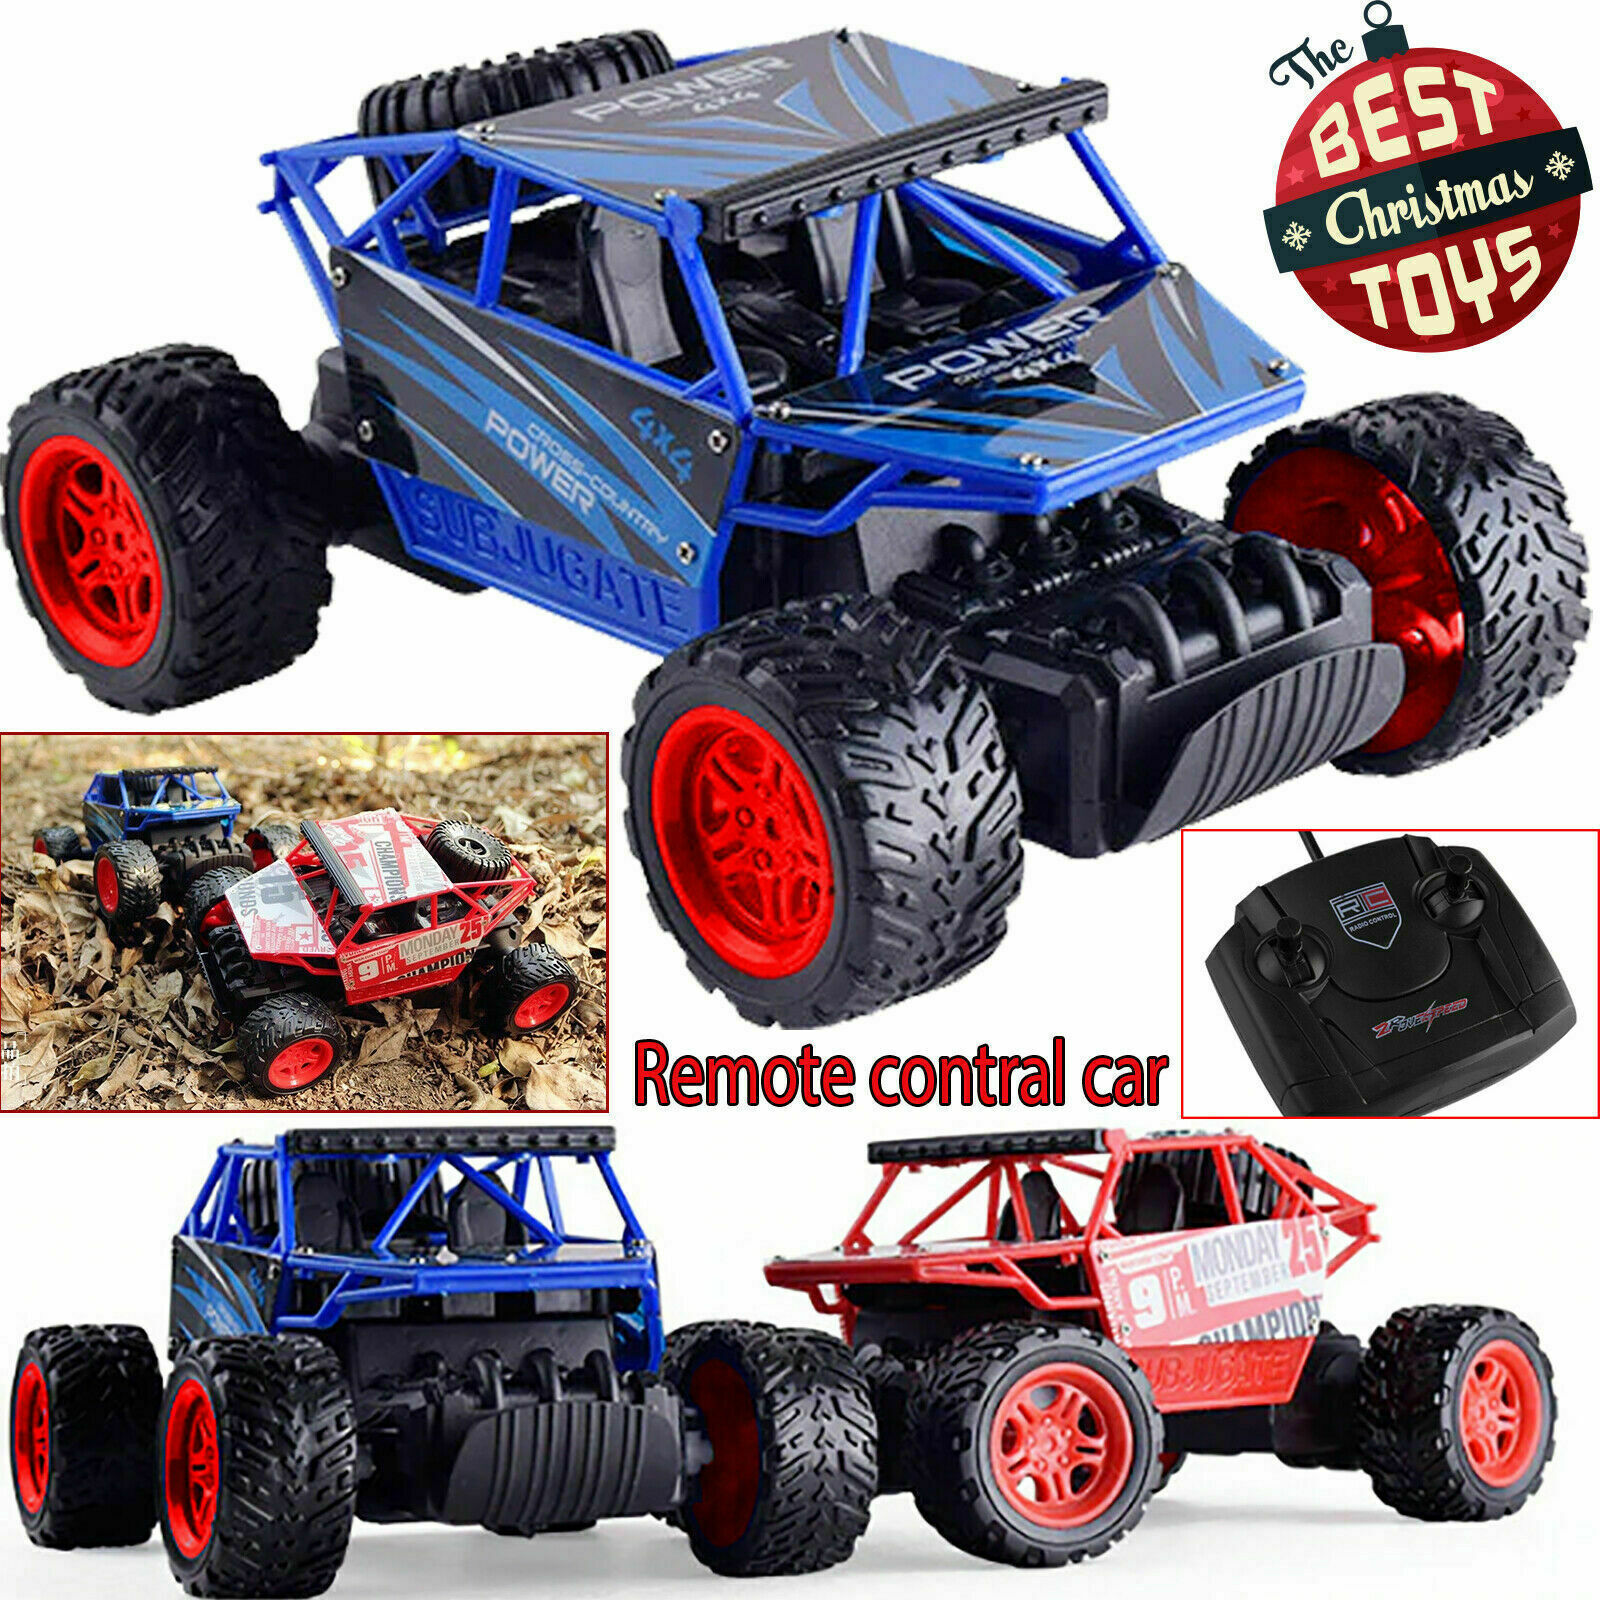 2.4G OFF ROAD REMOTE CONTROL RADIO RC CAR TOYS GIFTS 1//18 4WD ROCK CRAWLER TRUCK